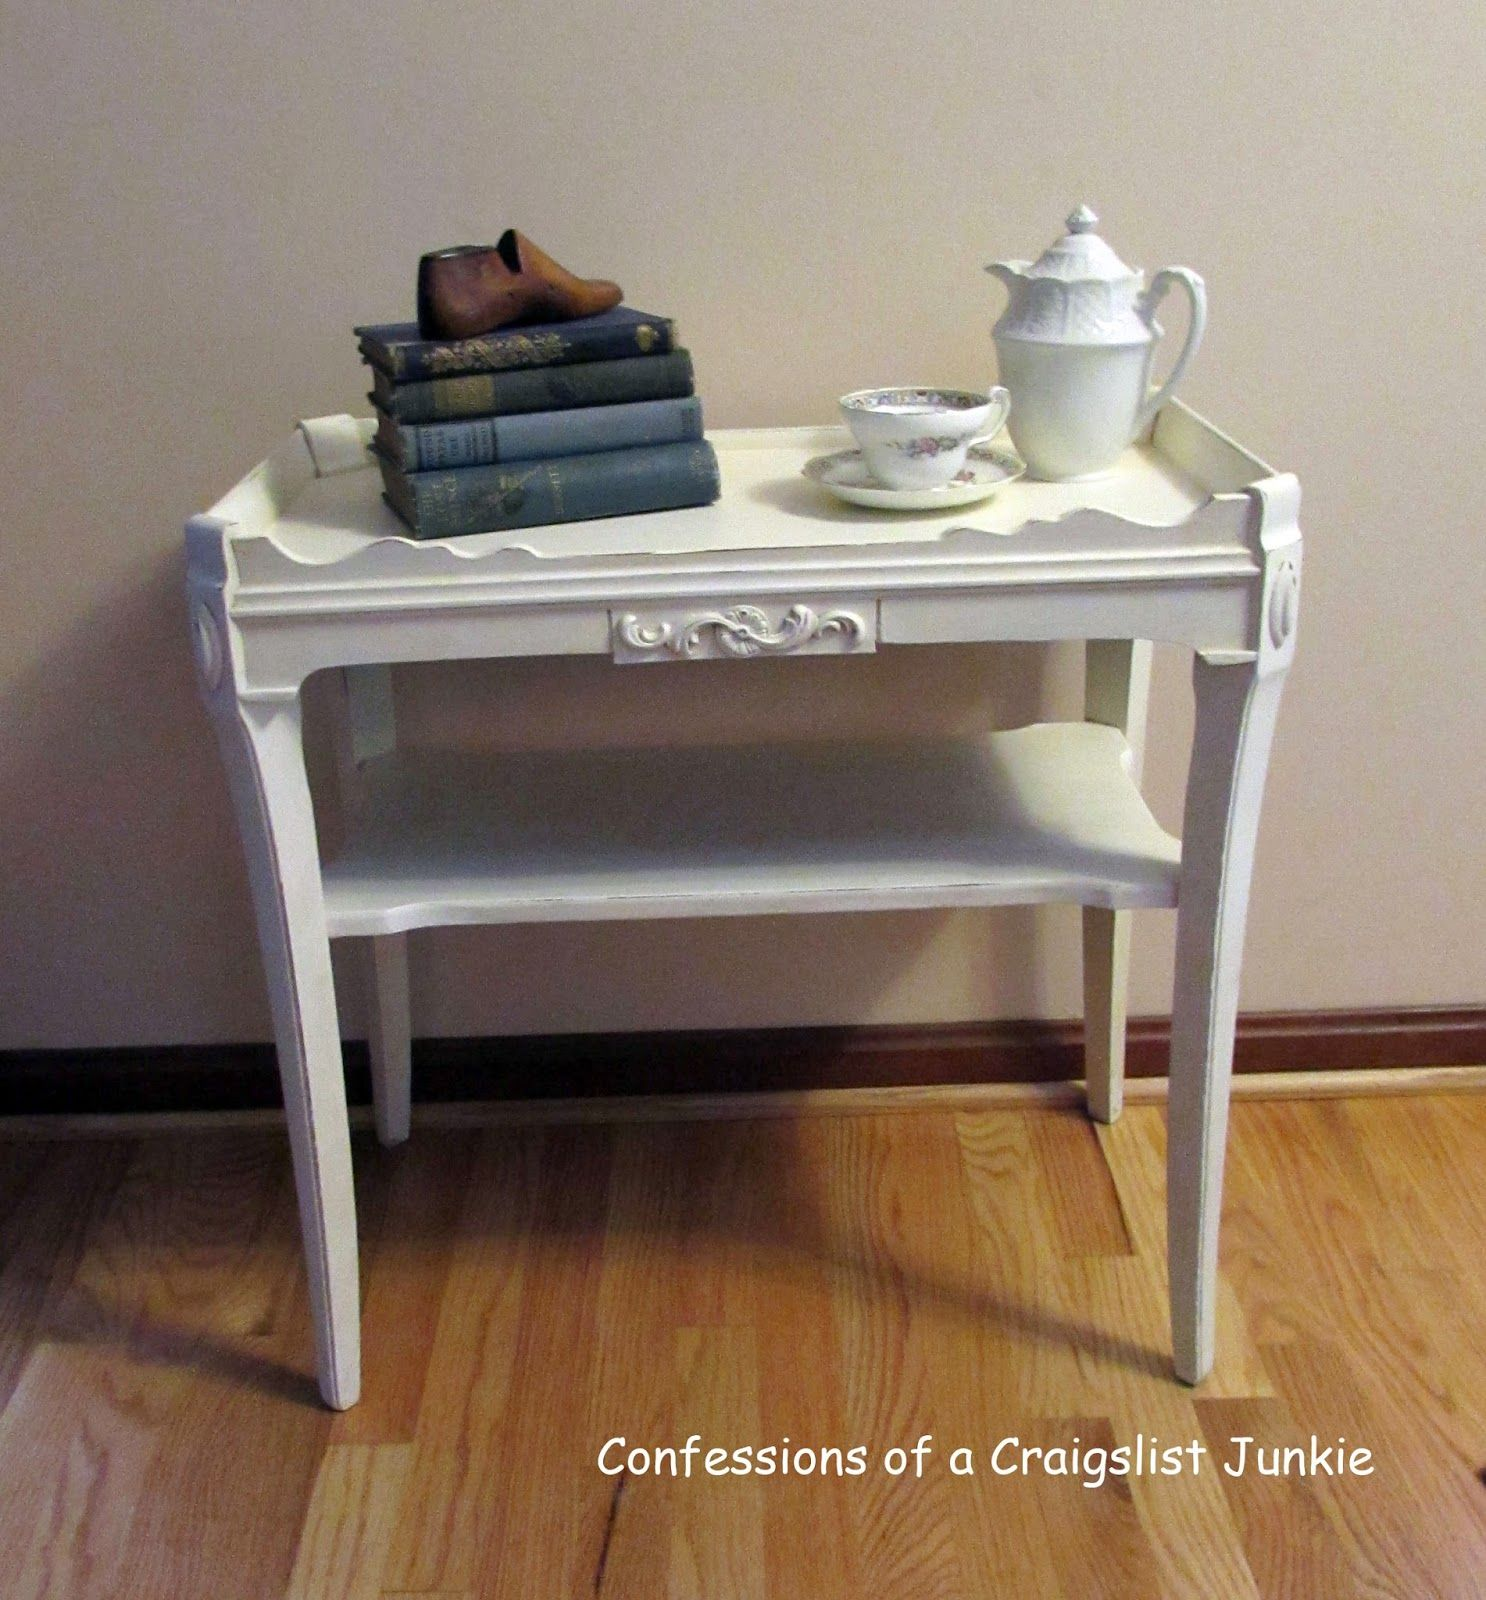 confessions of a craigslist junkie: Table Redo and Making Things Simpler